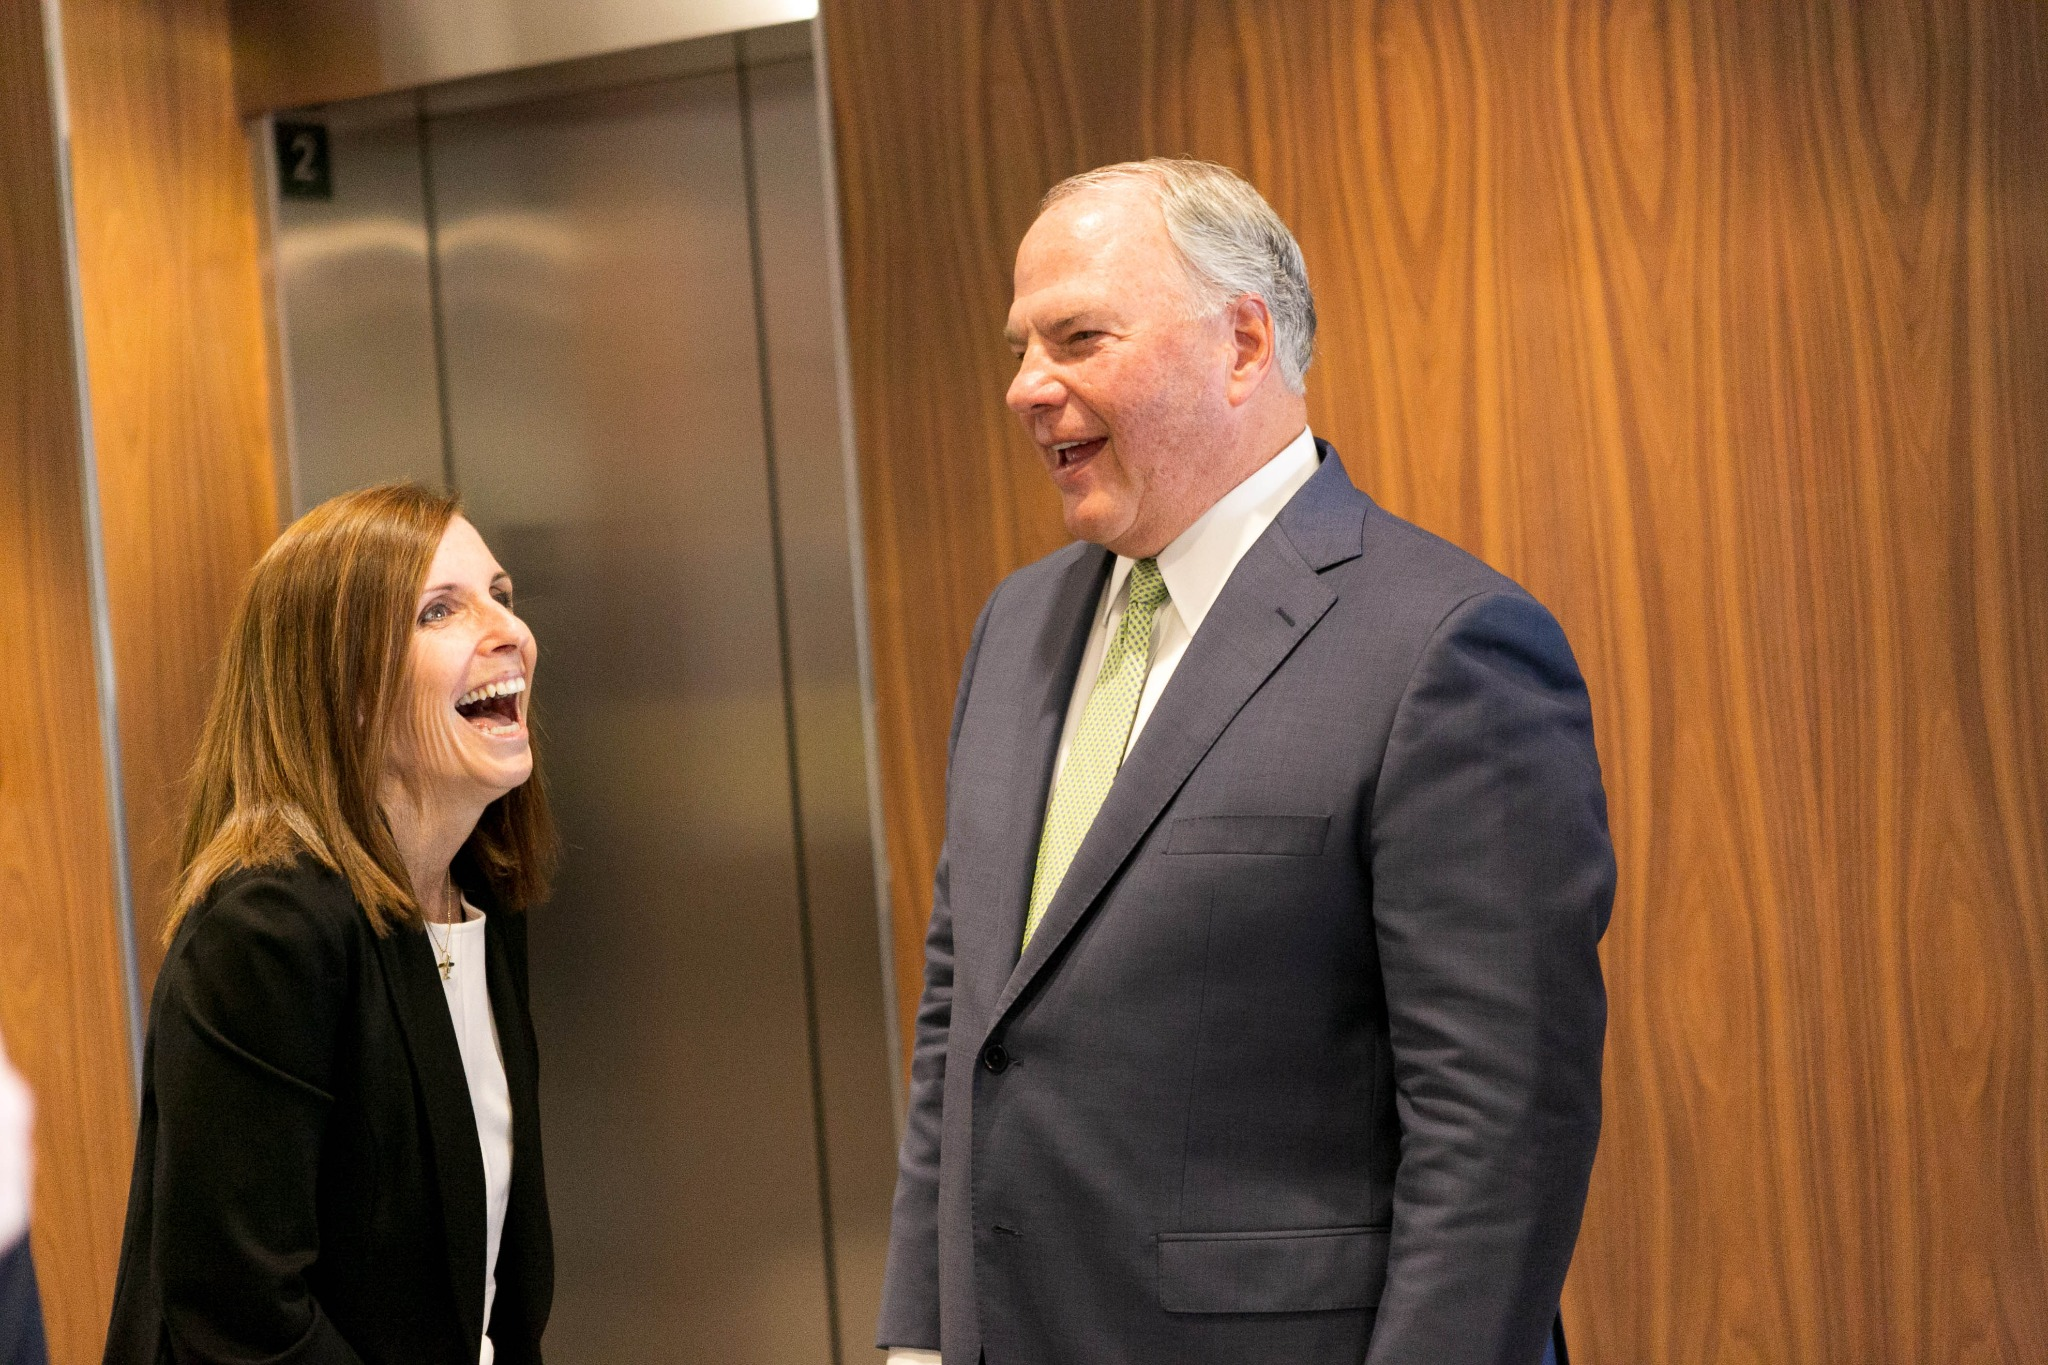 Elder Ronald A. Rasband of the Quorum of the Twelve Apostles has a light moment with Arizona's newest senator, Martha McSally, during a visit to her office on Friday, Oct. 18, 2019.